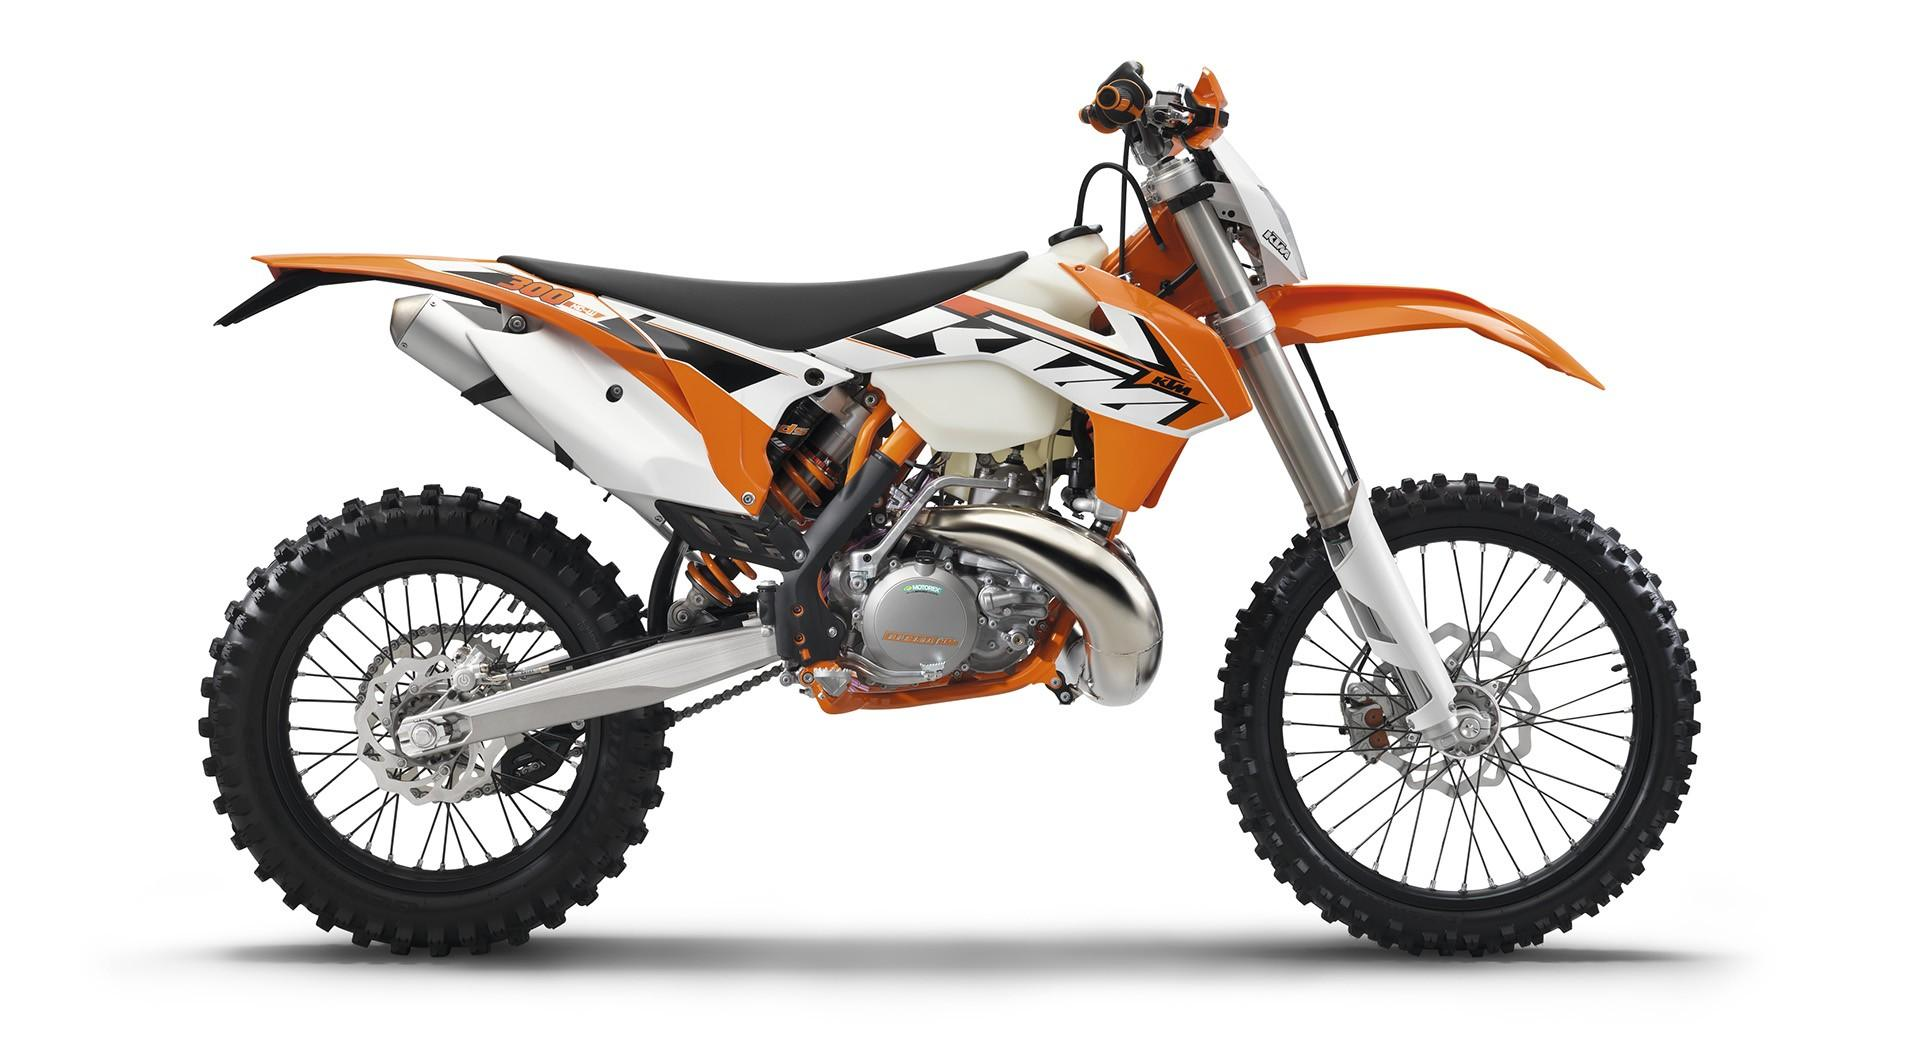 2015 KTM 300 XC-W in Orange, California